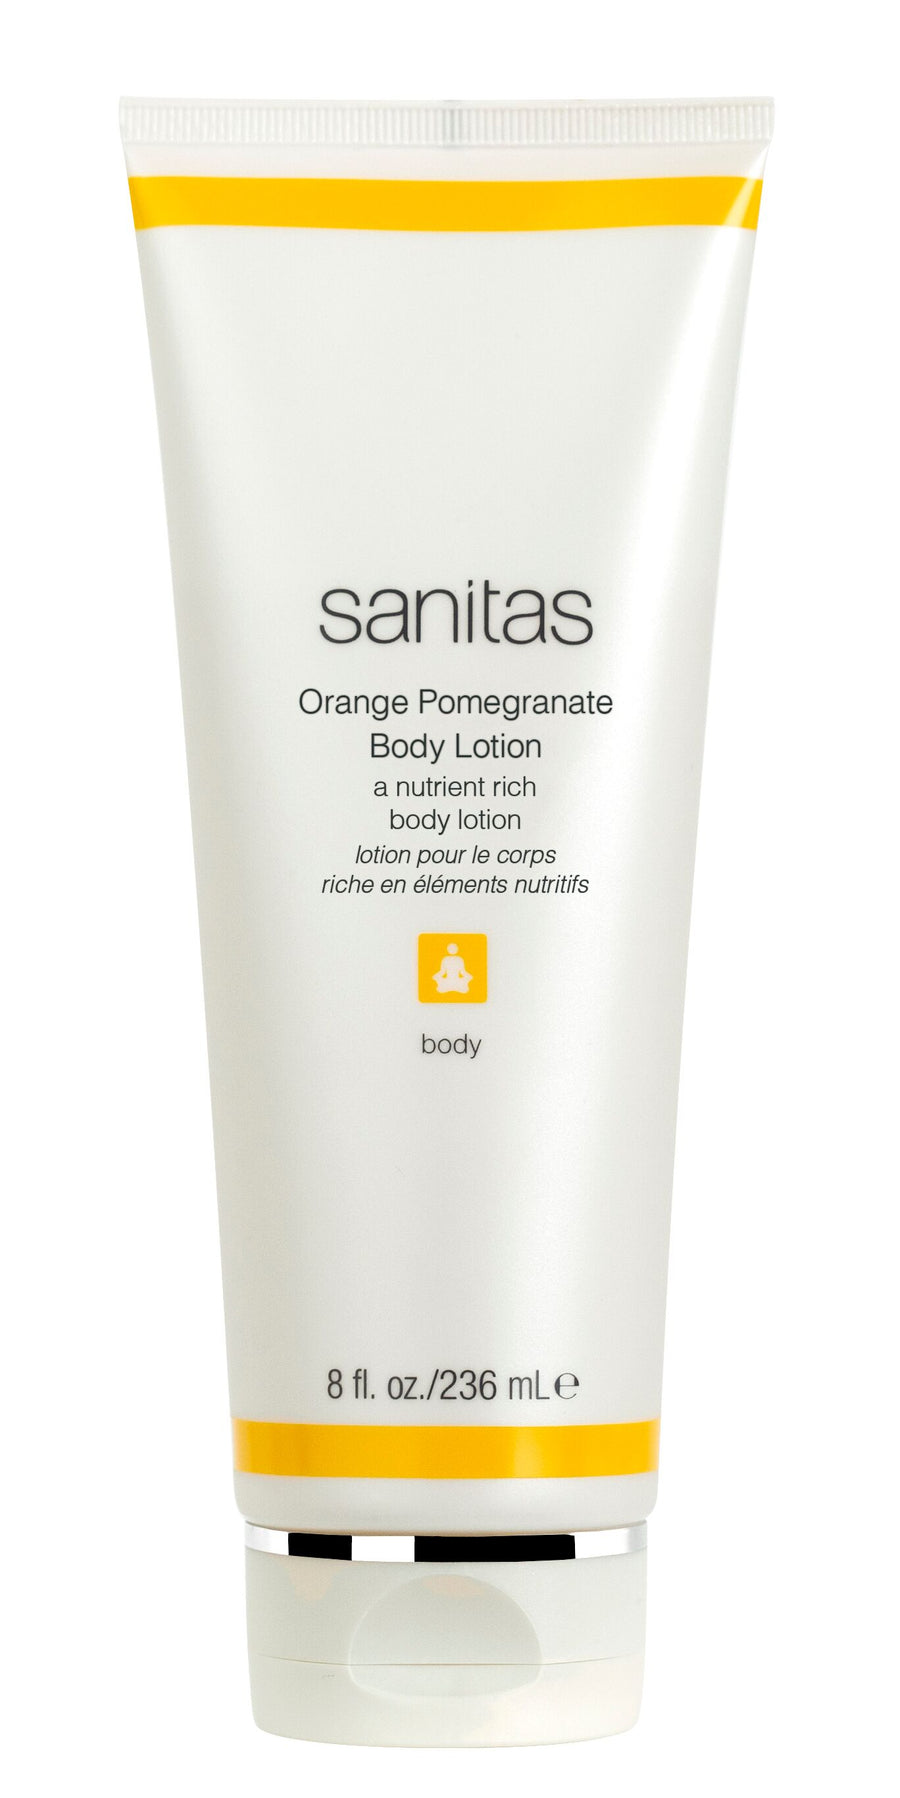 Sanitas Orange Pomegrante Body lotion ( a replenishing body lotion)